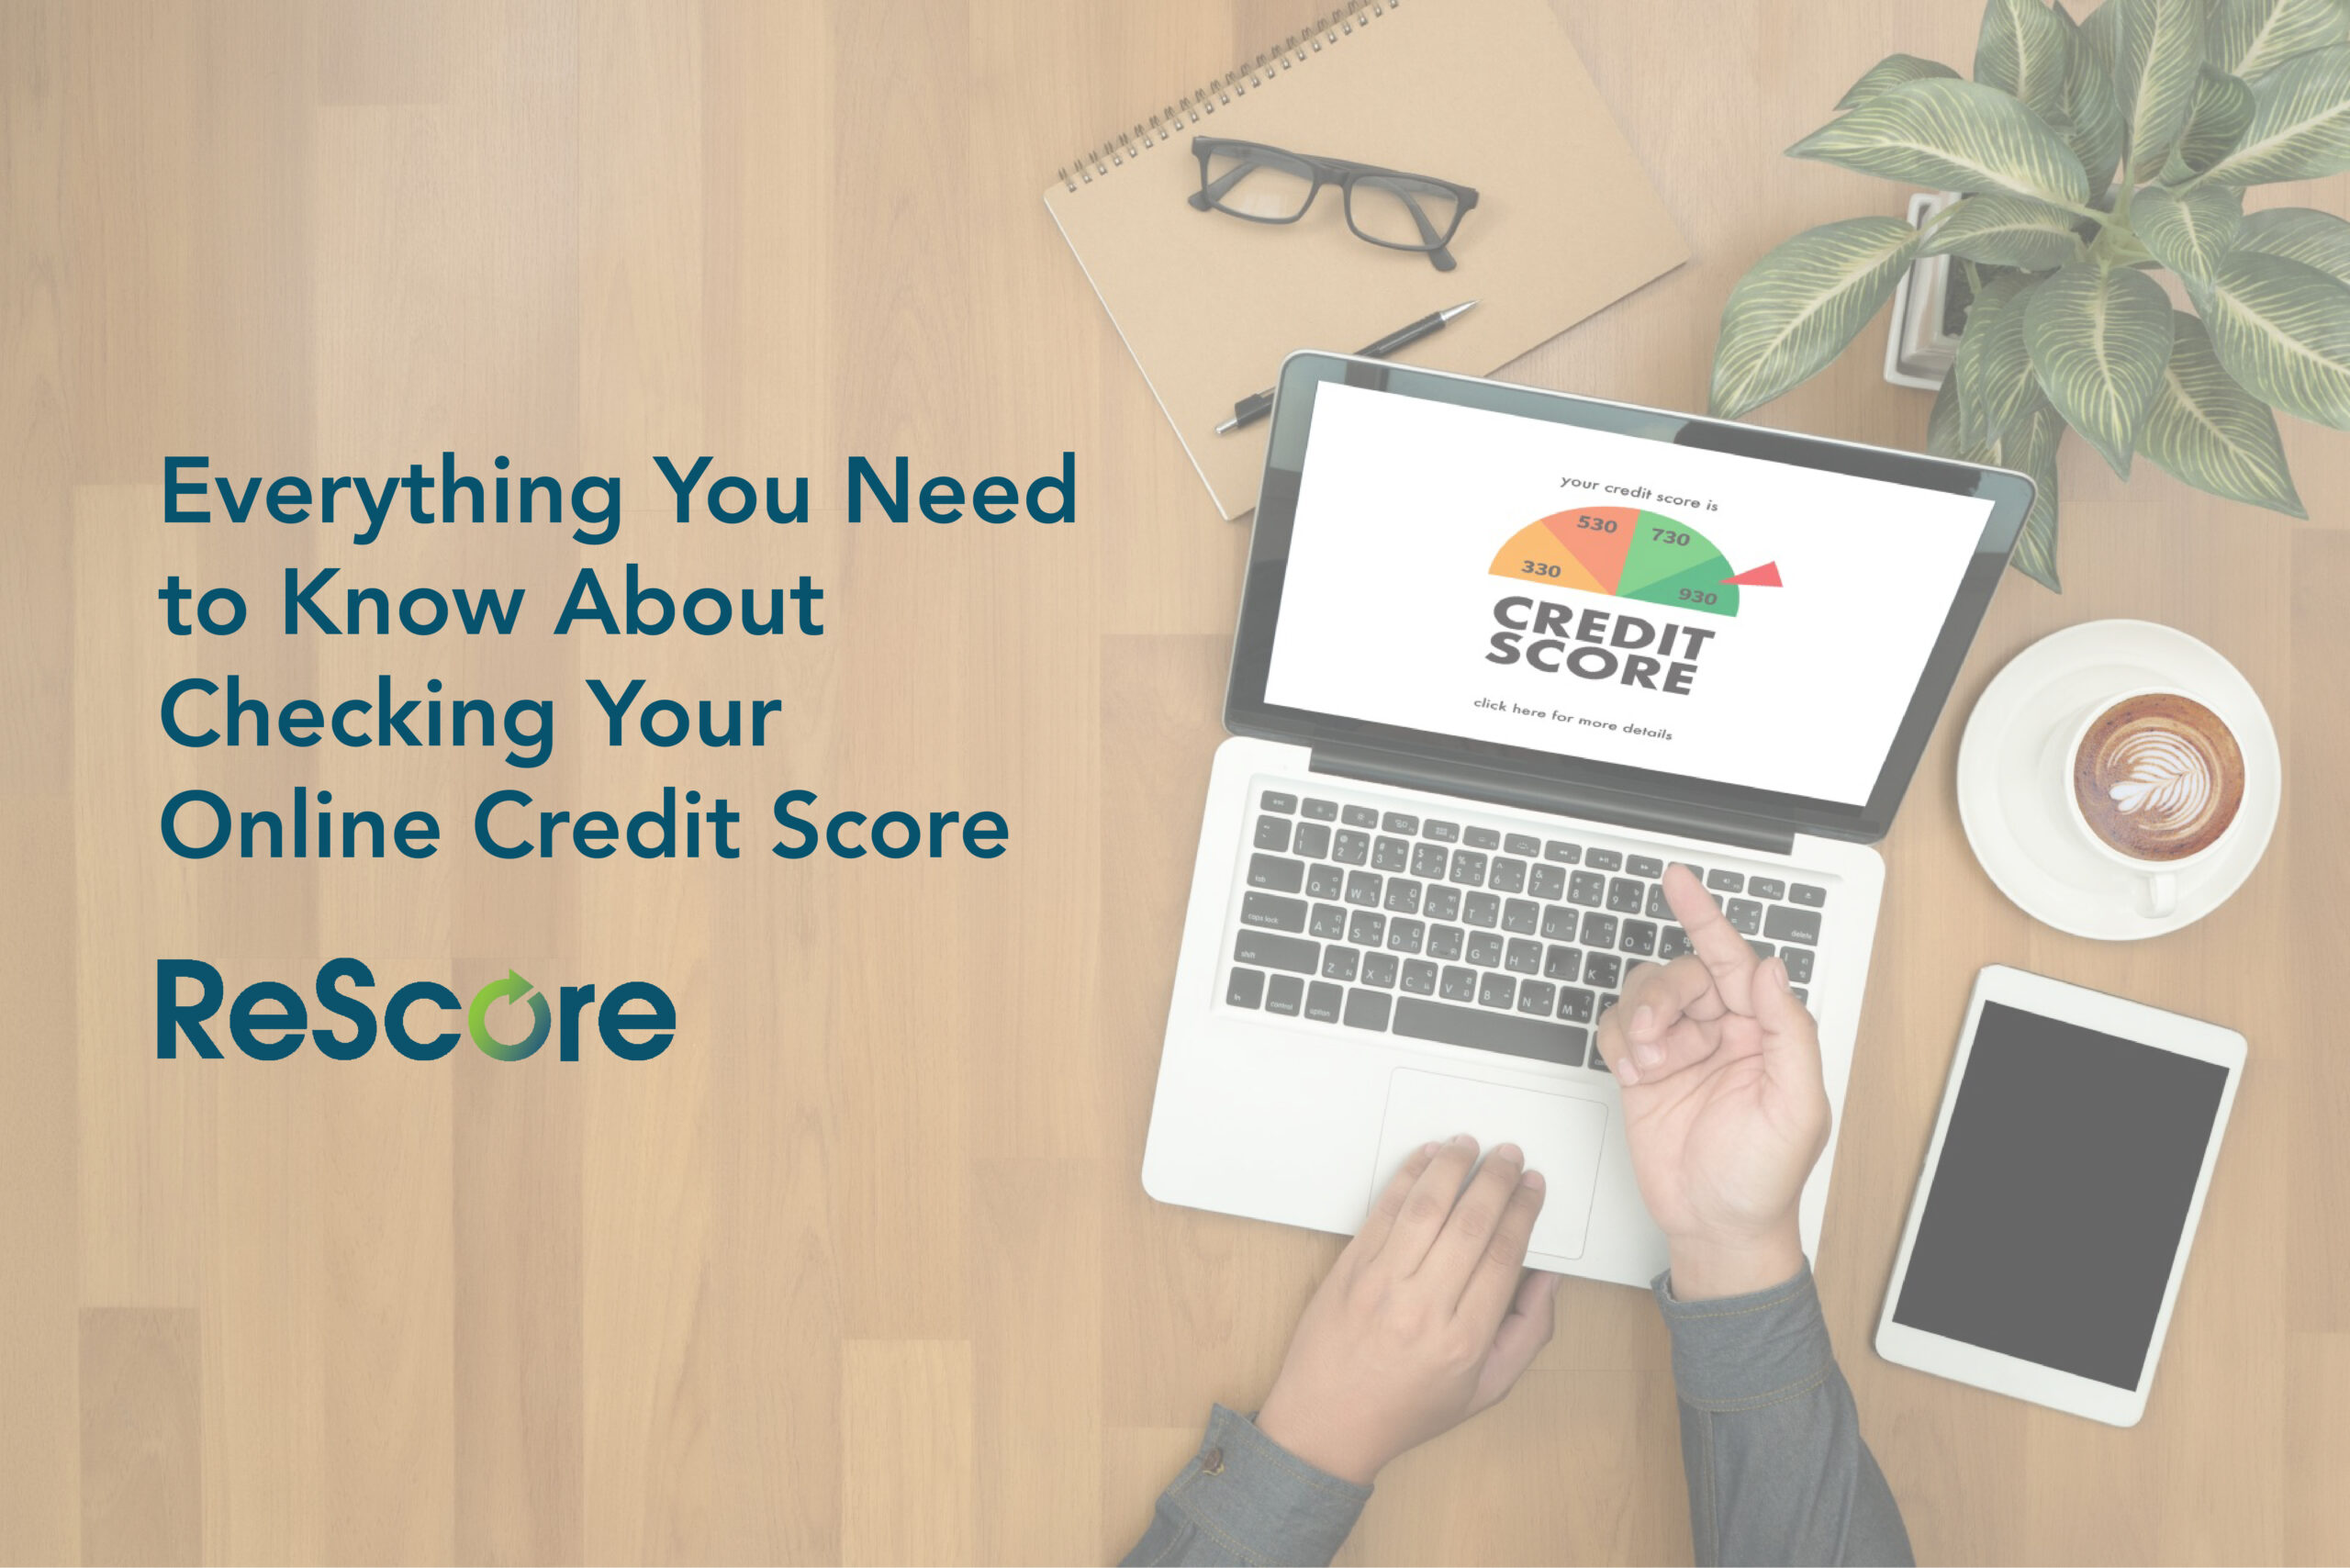 Everything You Need to Know About Checking Your Online Credit Score